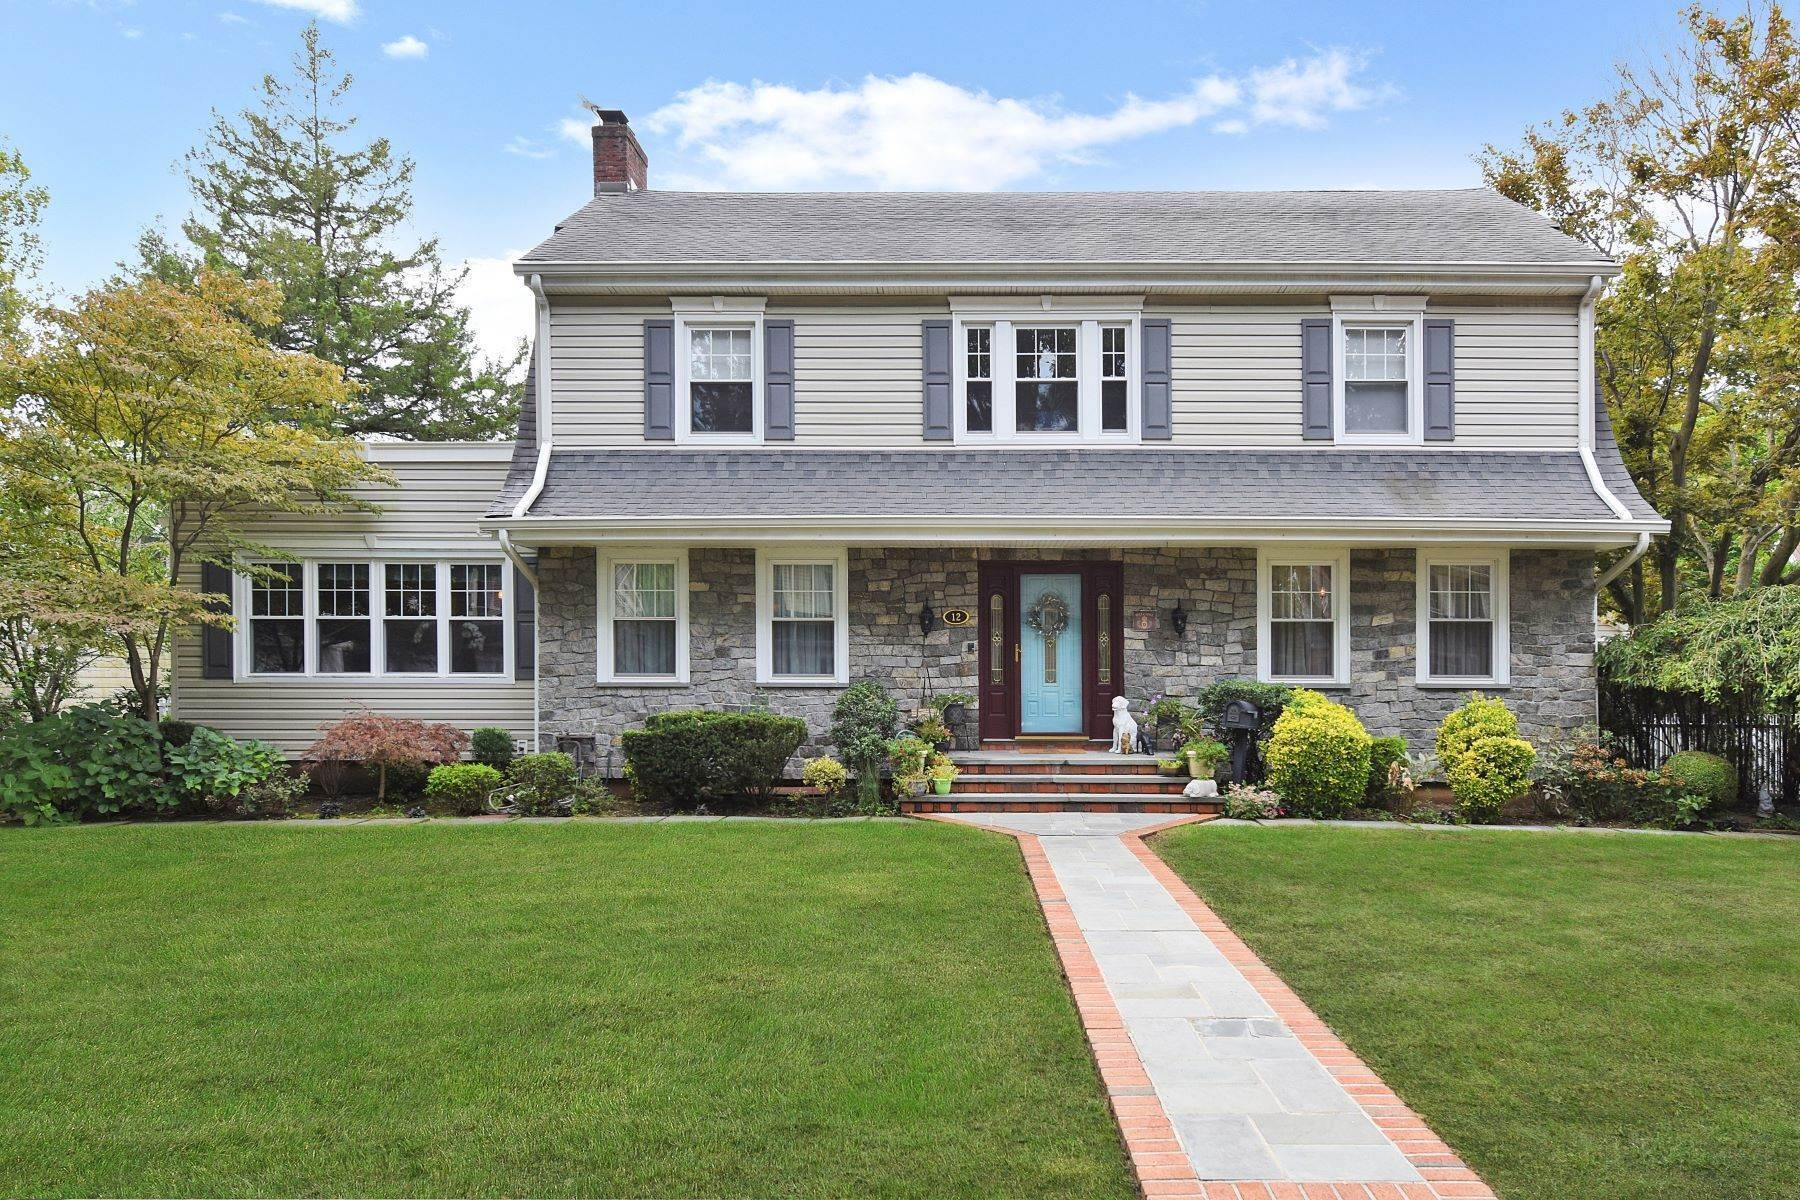 Single Family Homes for Sale at 12 Euston Road, Garden City, Ny, 11530 12 Euston Road Garden City, New York 11530 United States